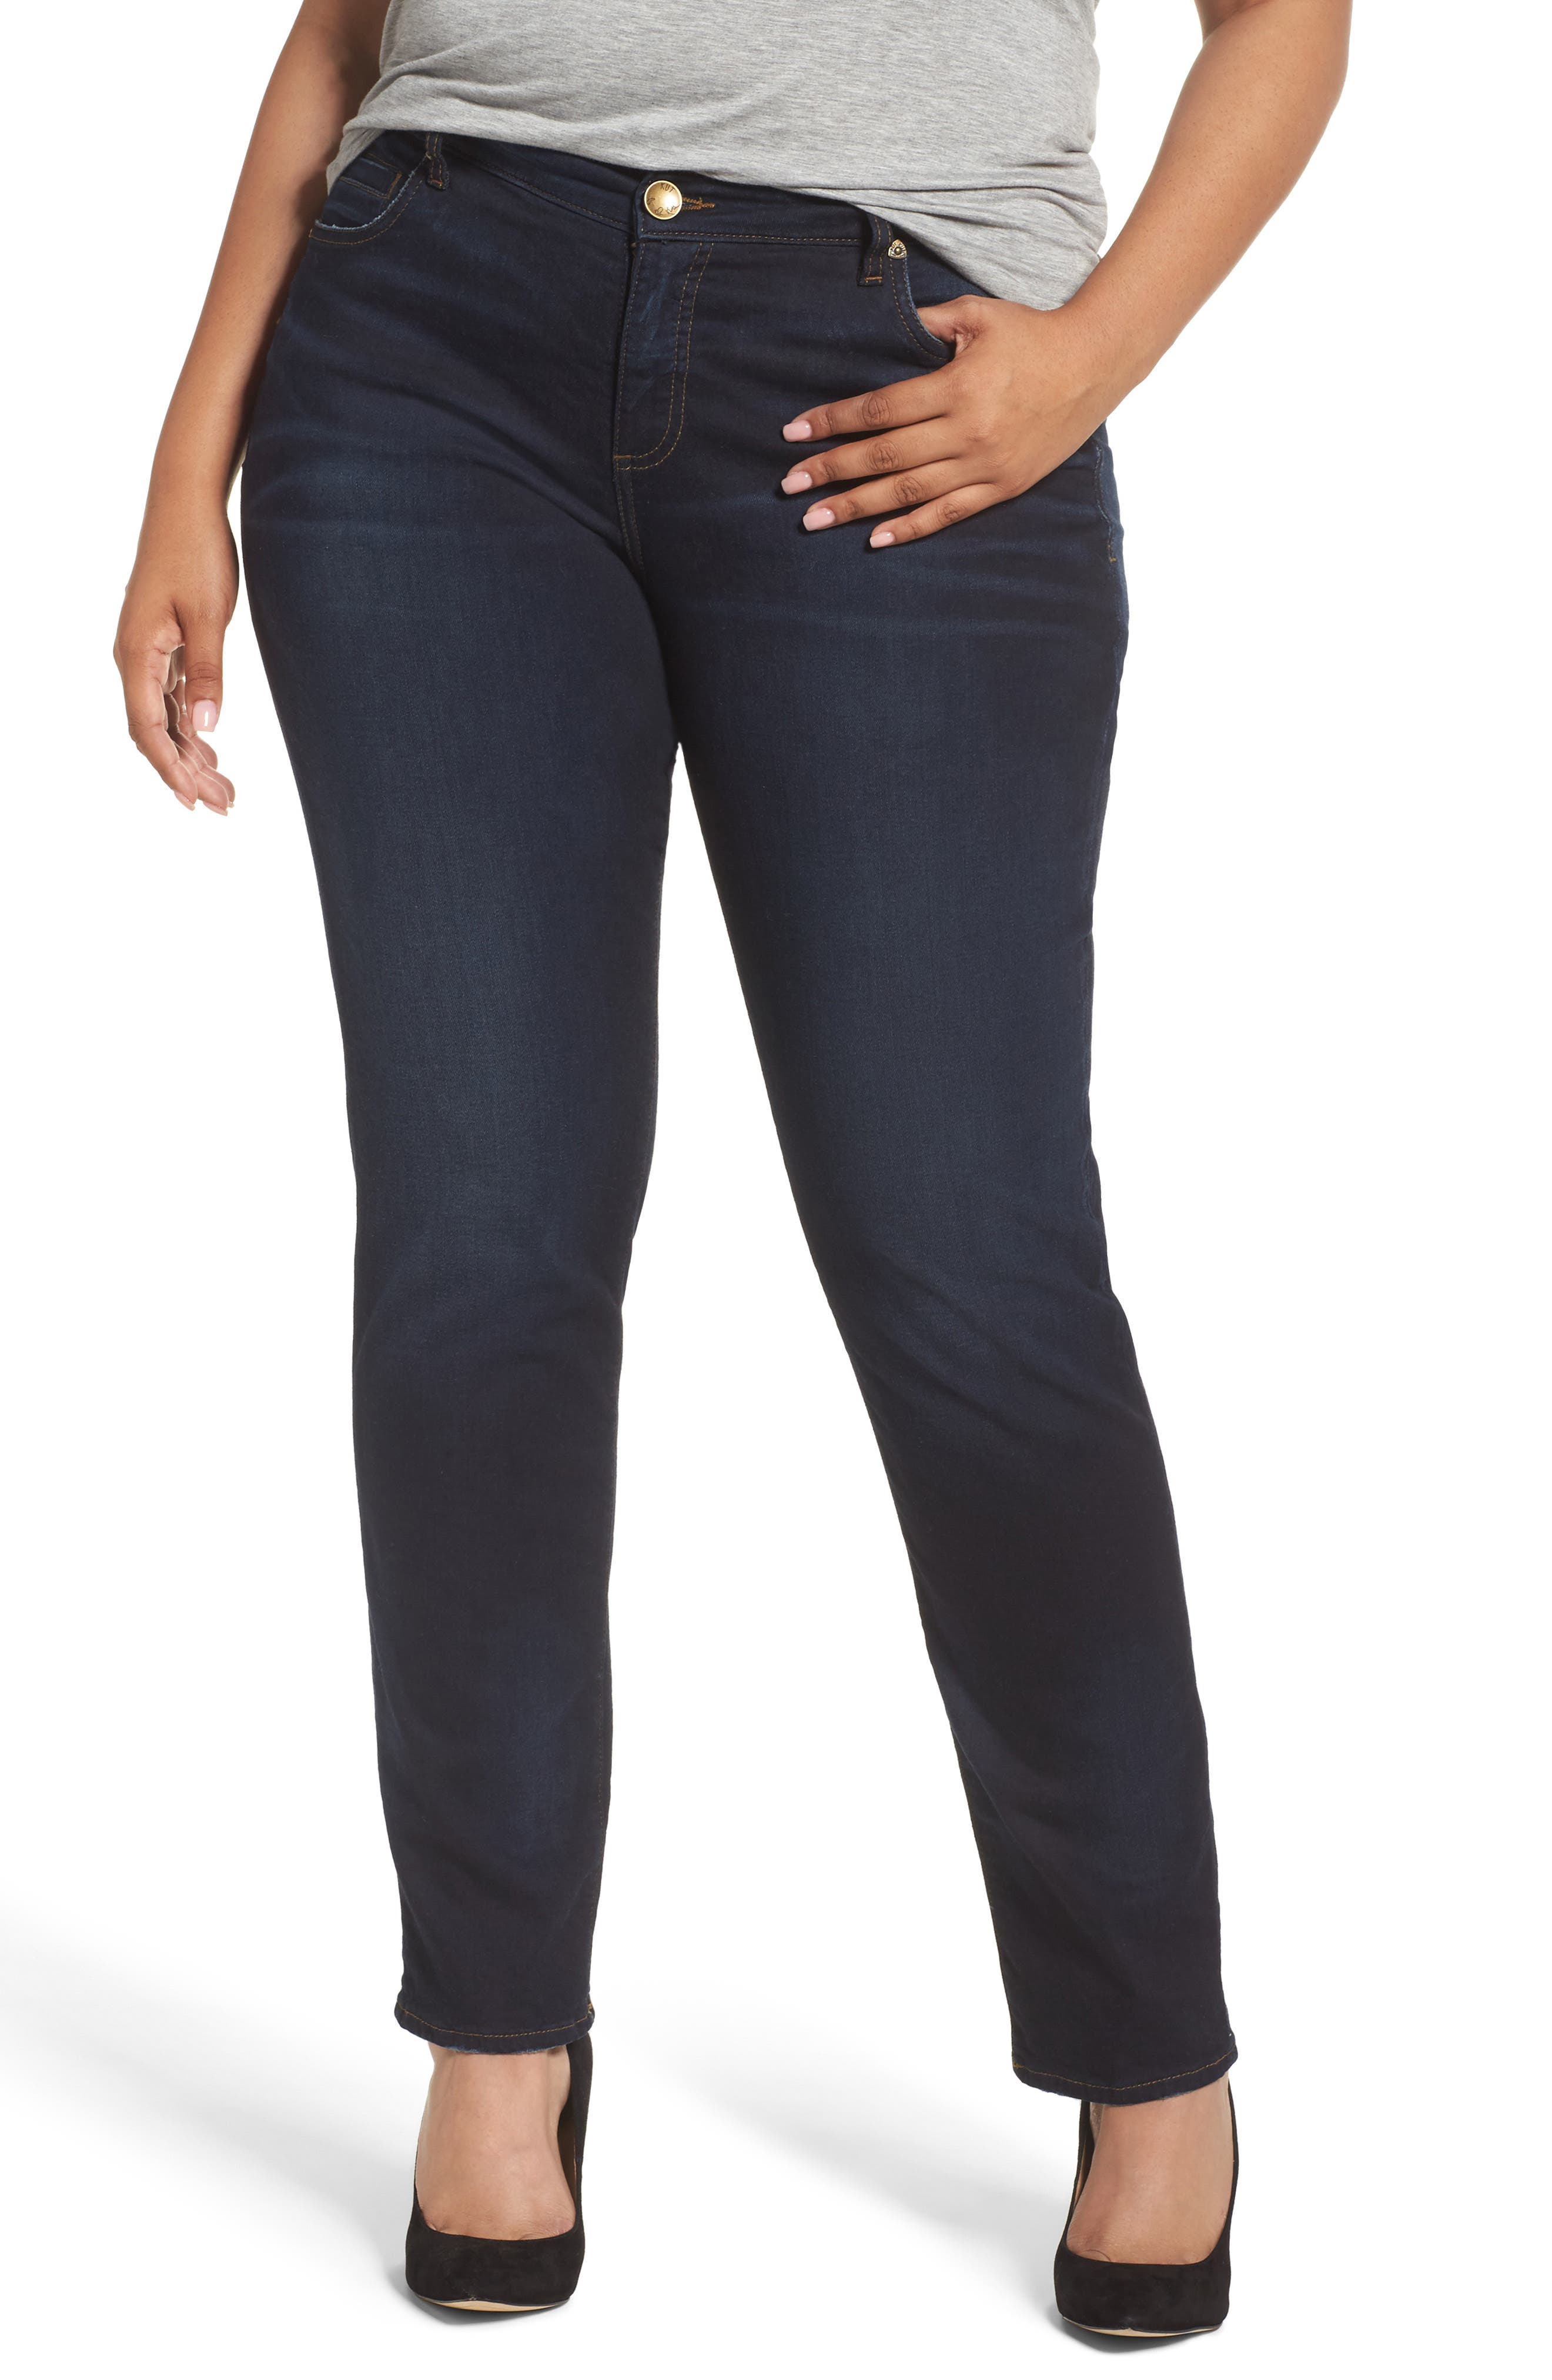 Alternate Image 1 Selected - KUT from the Kloth Diana Stretch Skinny Jeans (Lionized) (Plus Size)